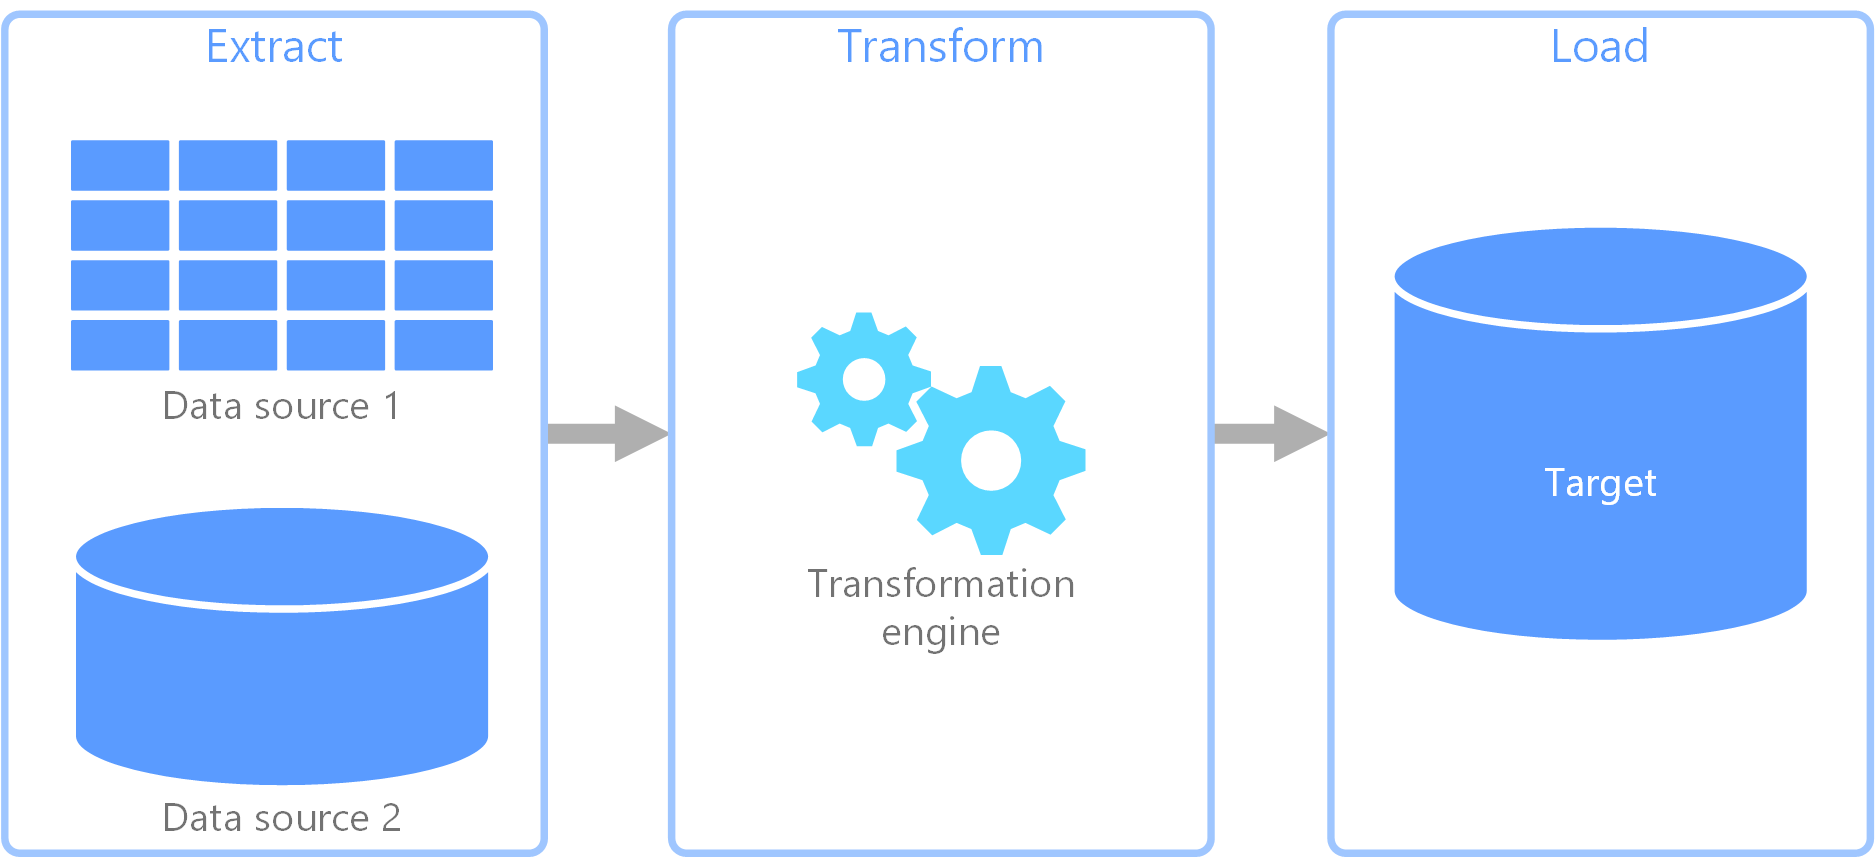 Extract, transform, and load (ETL).